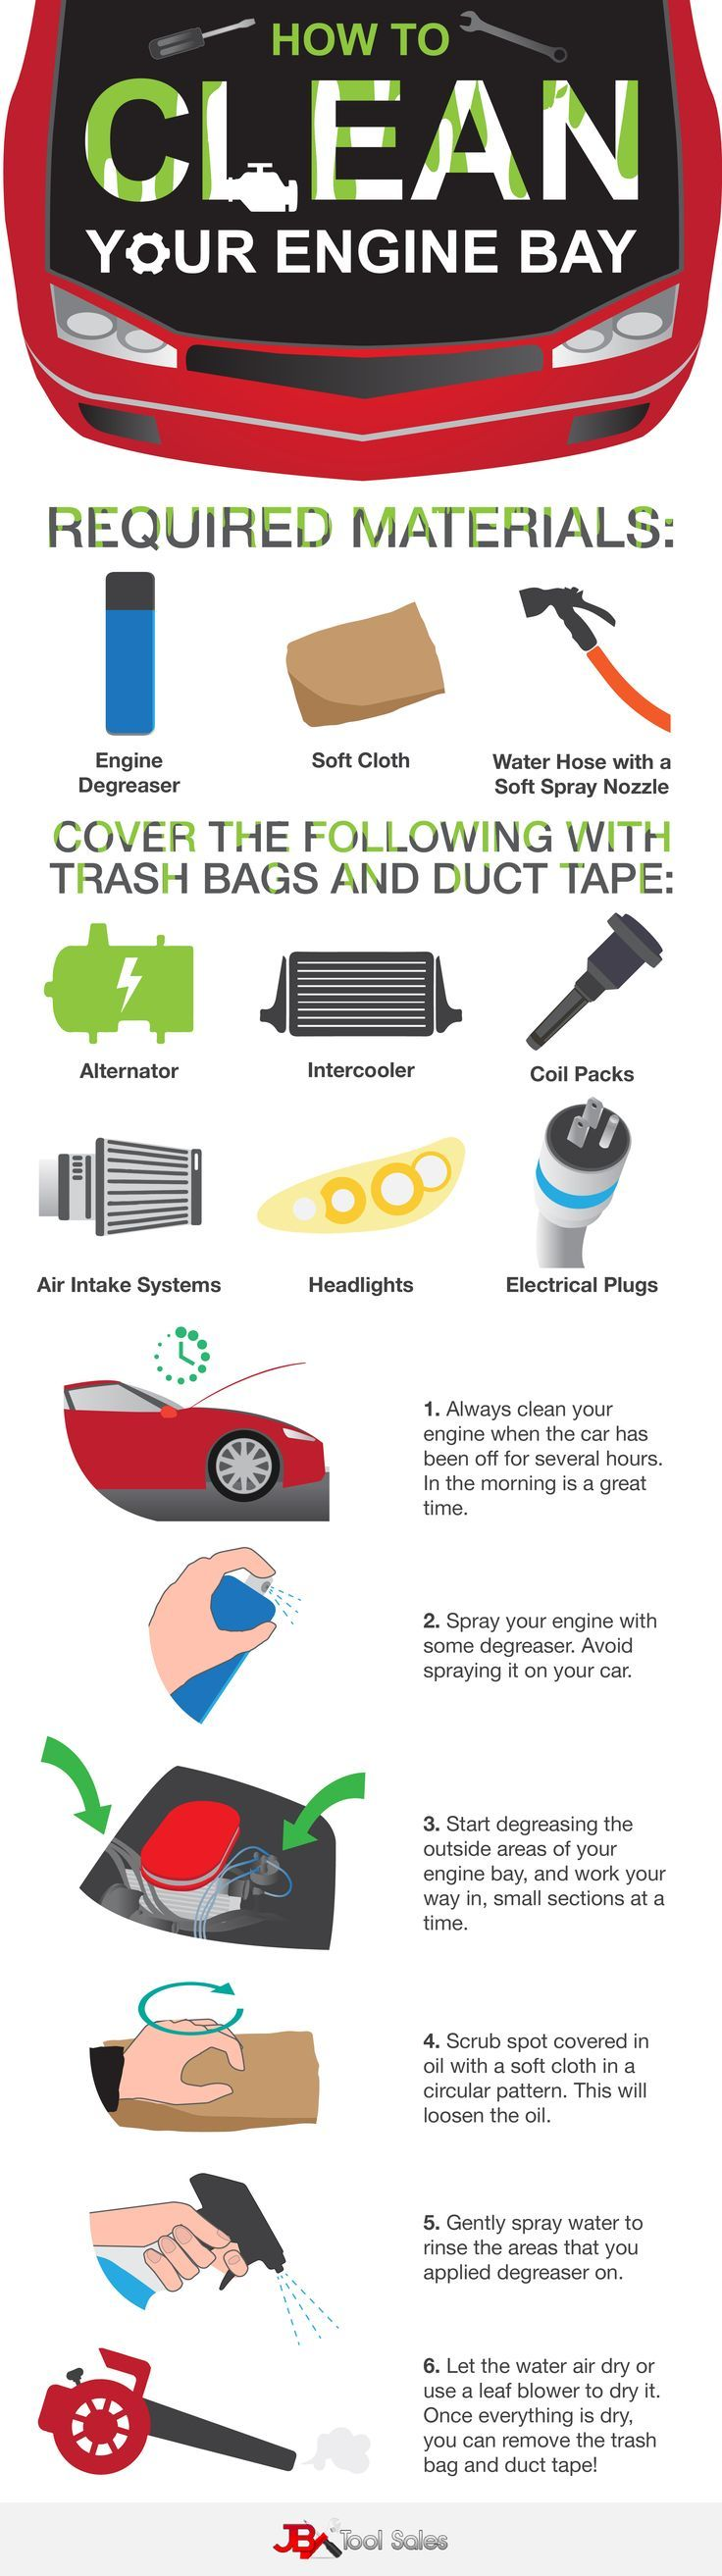 Cleaning your car s engine bay can be tricky follow these tips so you can clean